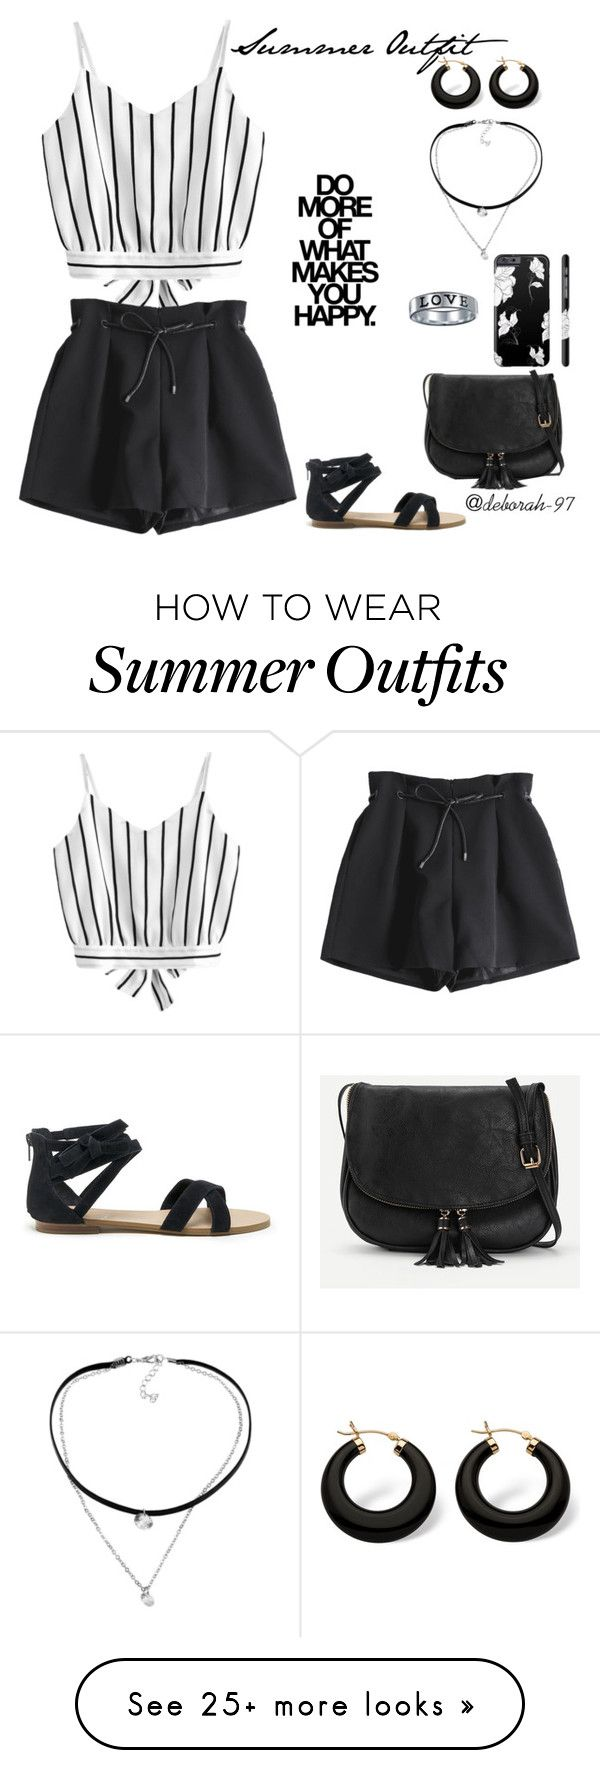 """Summer Outfit #4"" by deborah-97 on Polyvore featuring Sole Society, Palm Beach Jewelry, WithChic and Bling Jewelry"